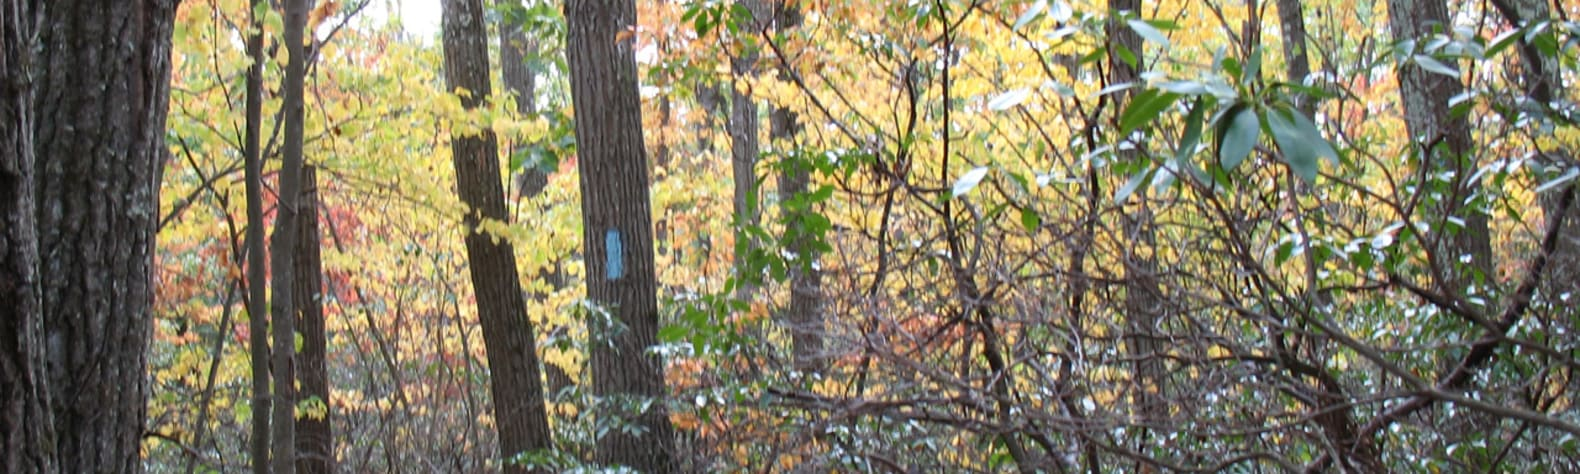 Tunxis State Forest